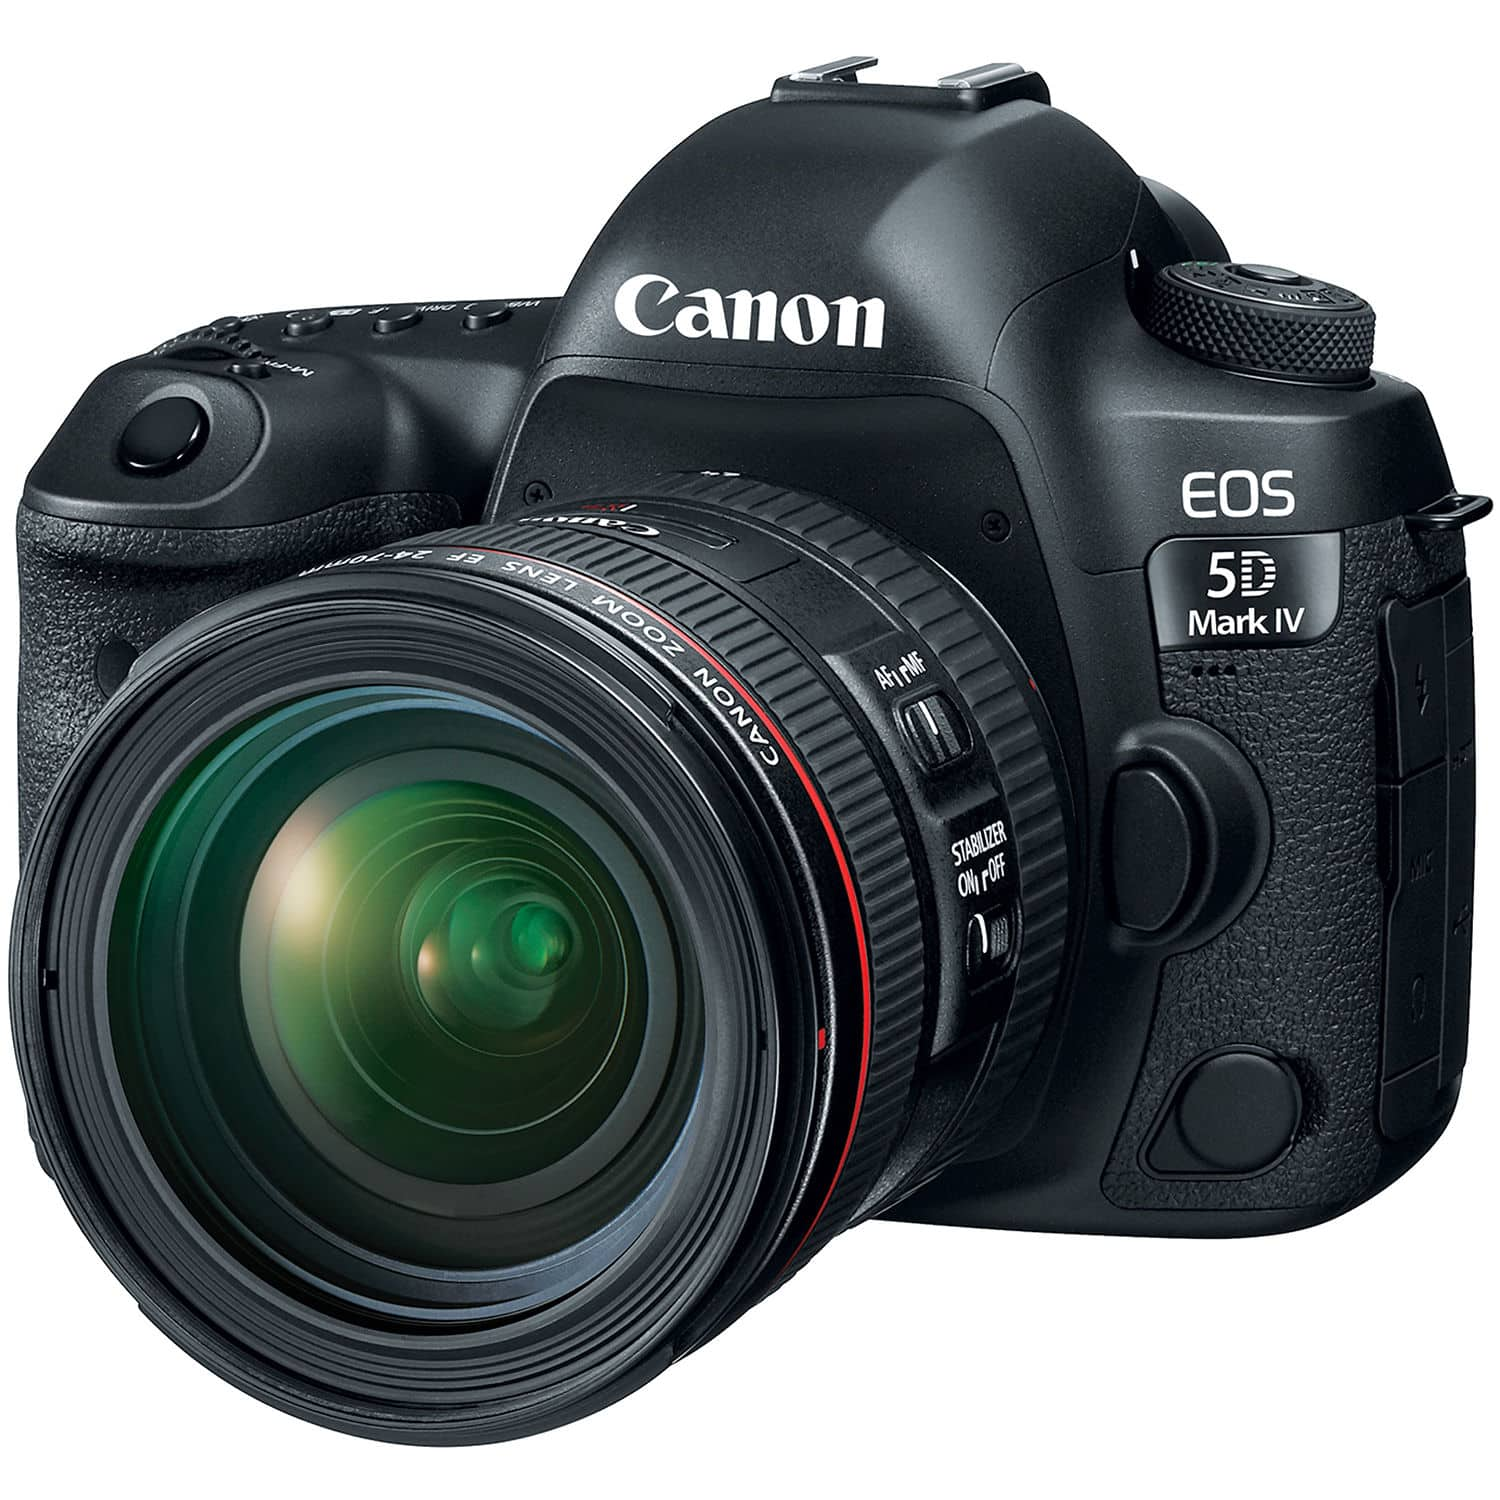 canon 5D mark 4 | Best Camera For YouTube Vlogging | YouTube Camera Kit